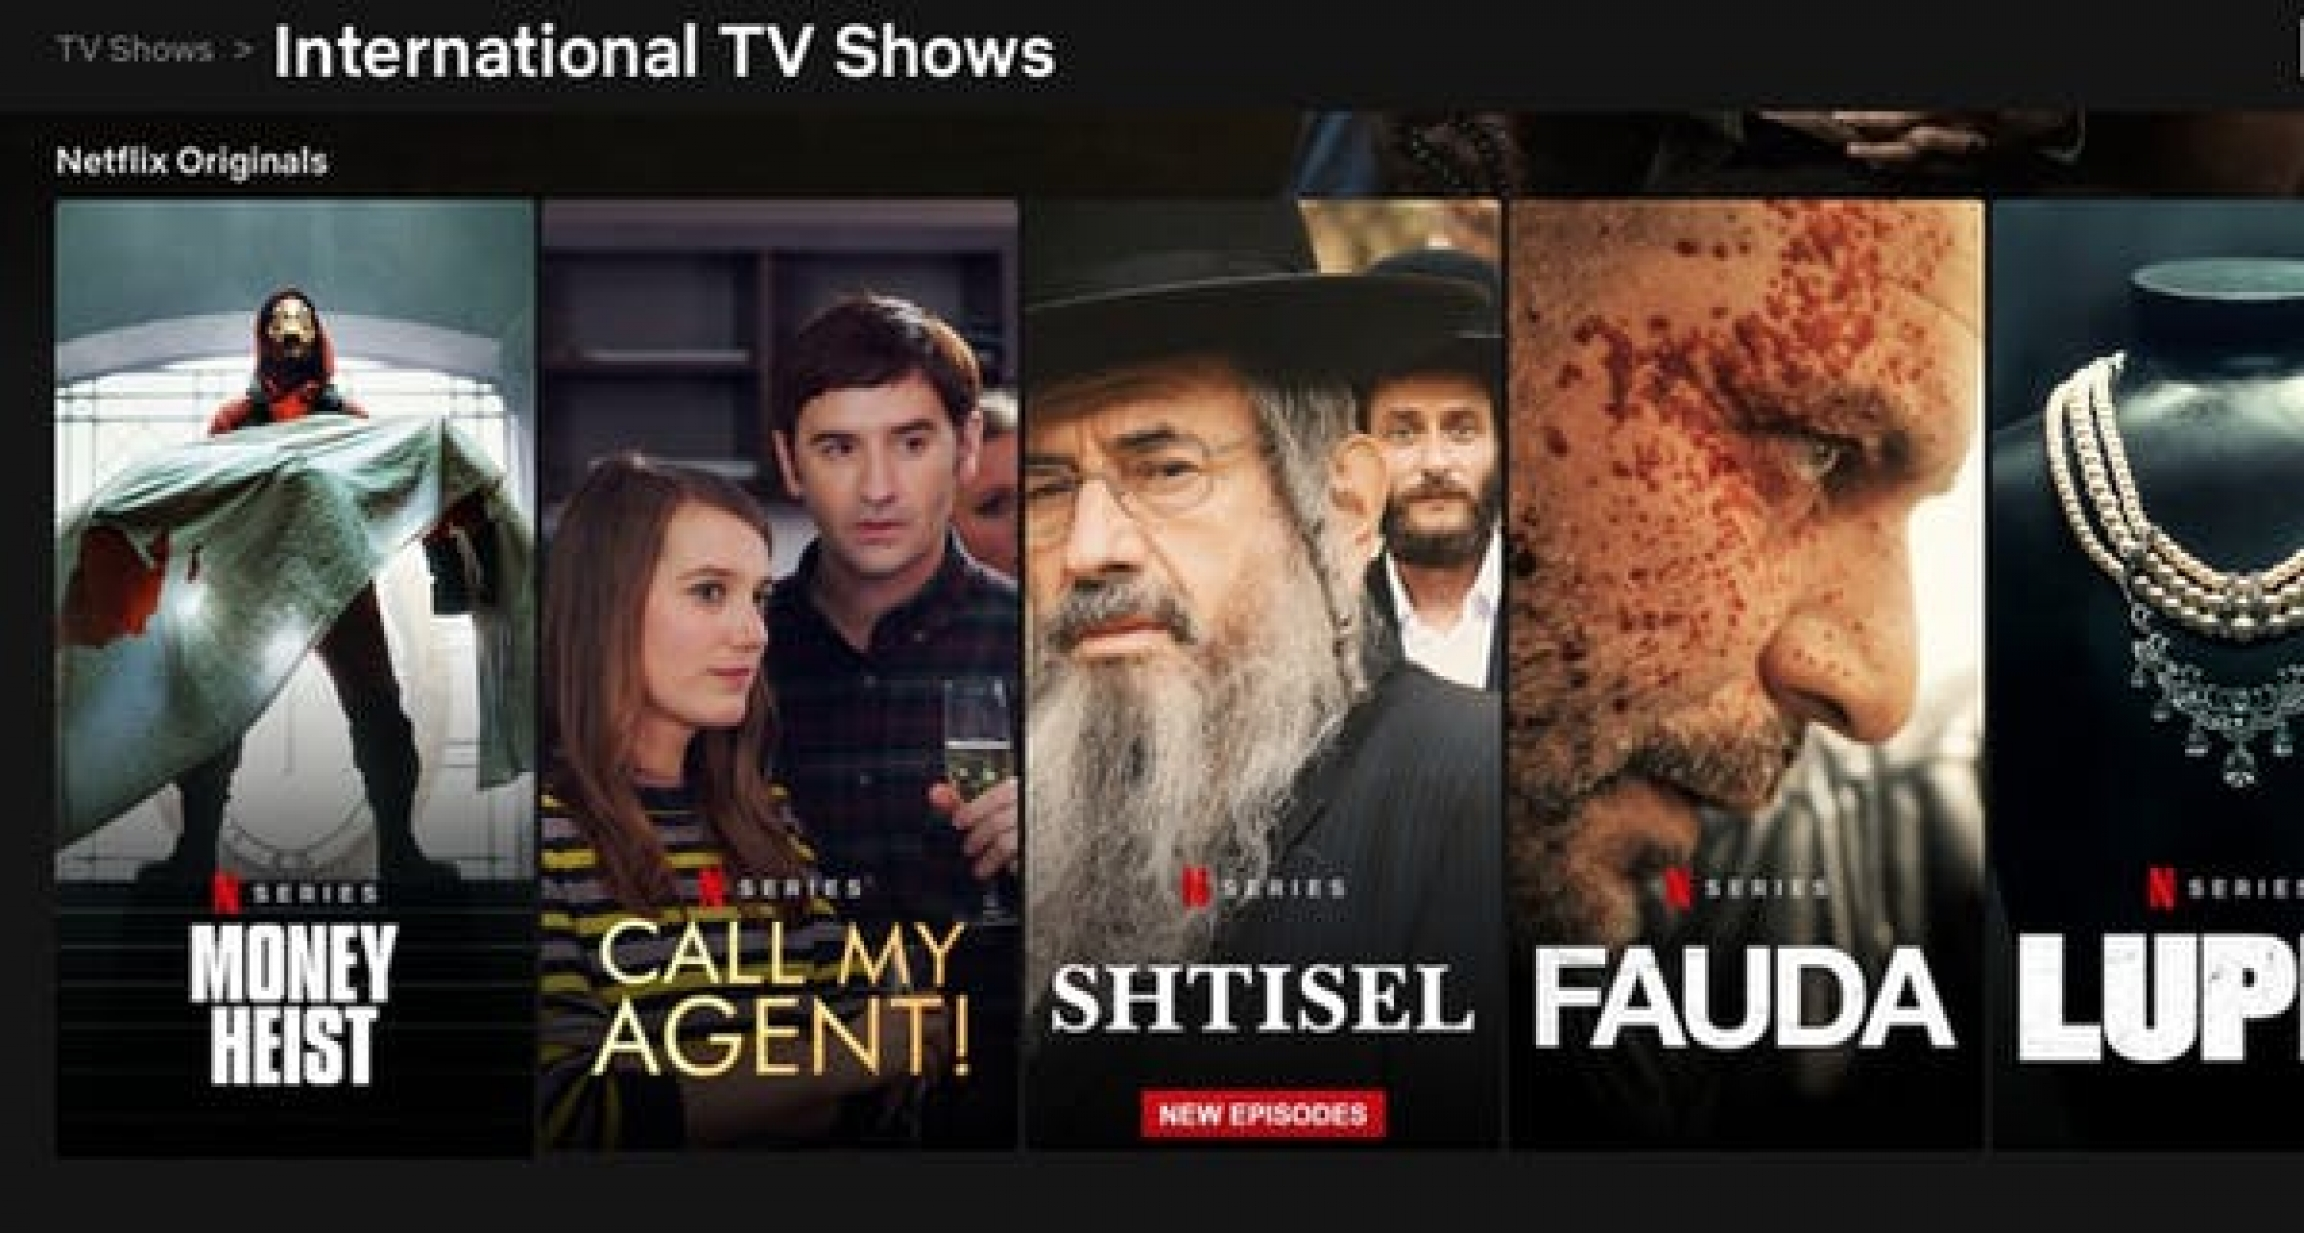 A snippet of Netflix's international lineup on April 2, 2021.